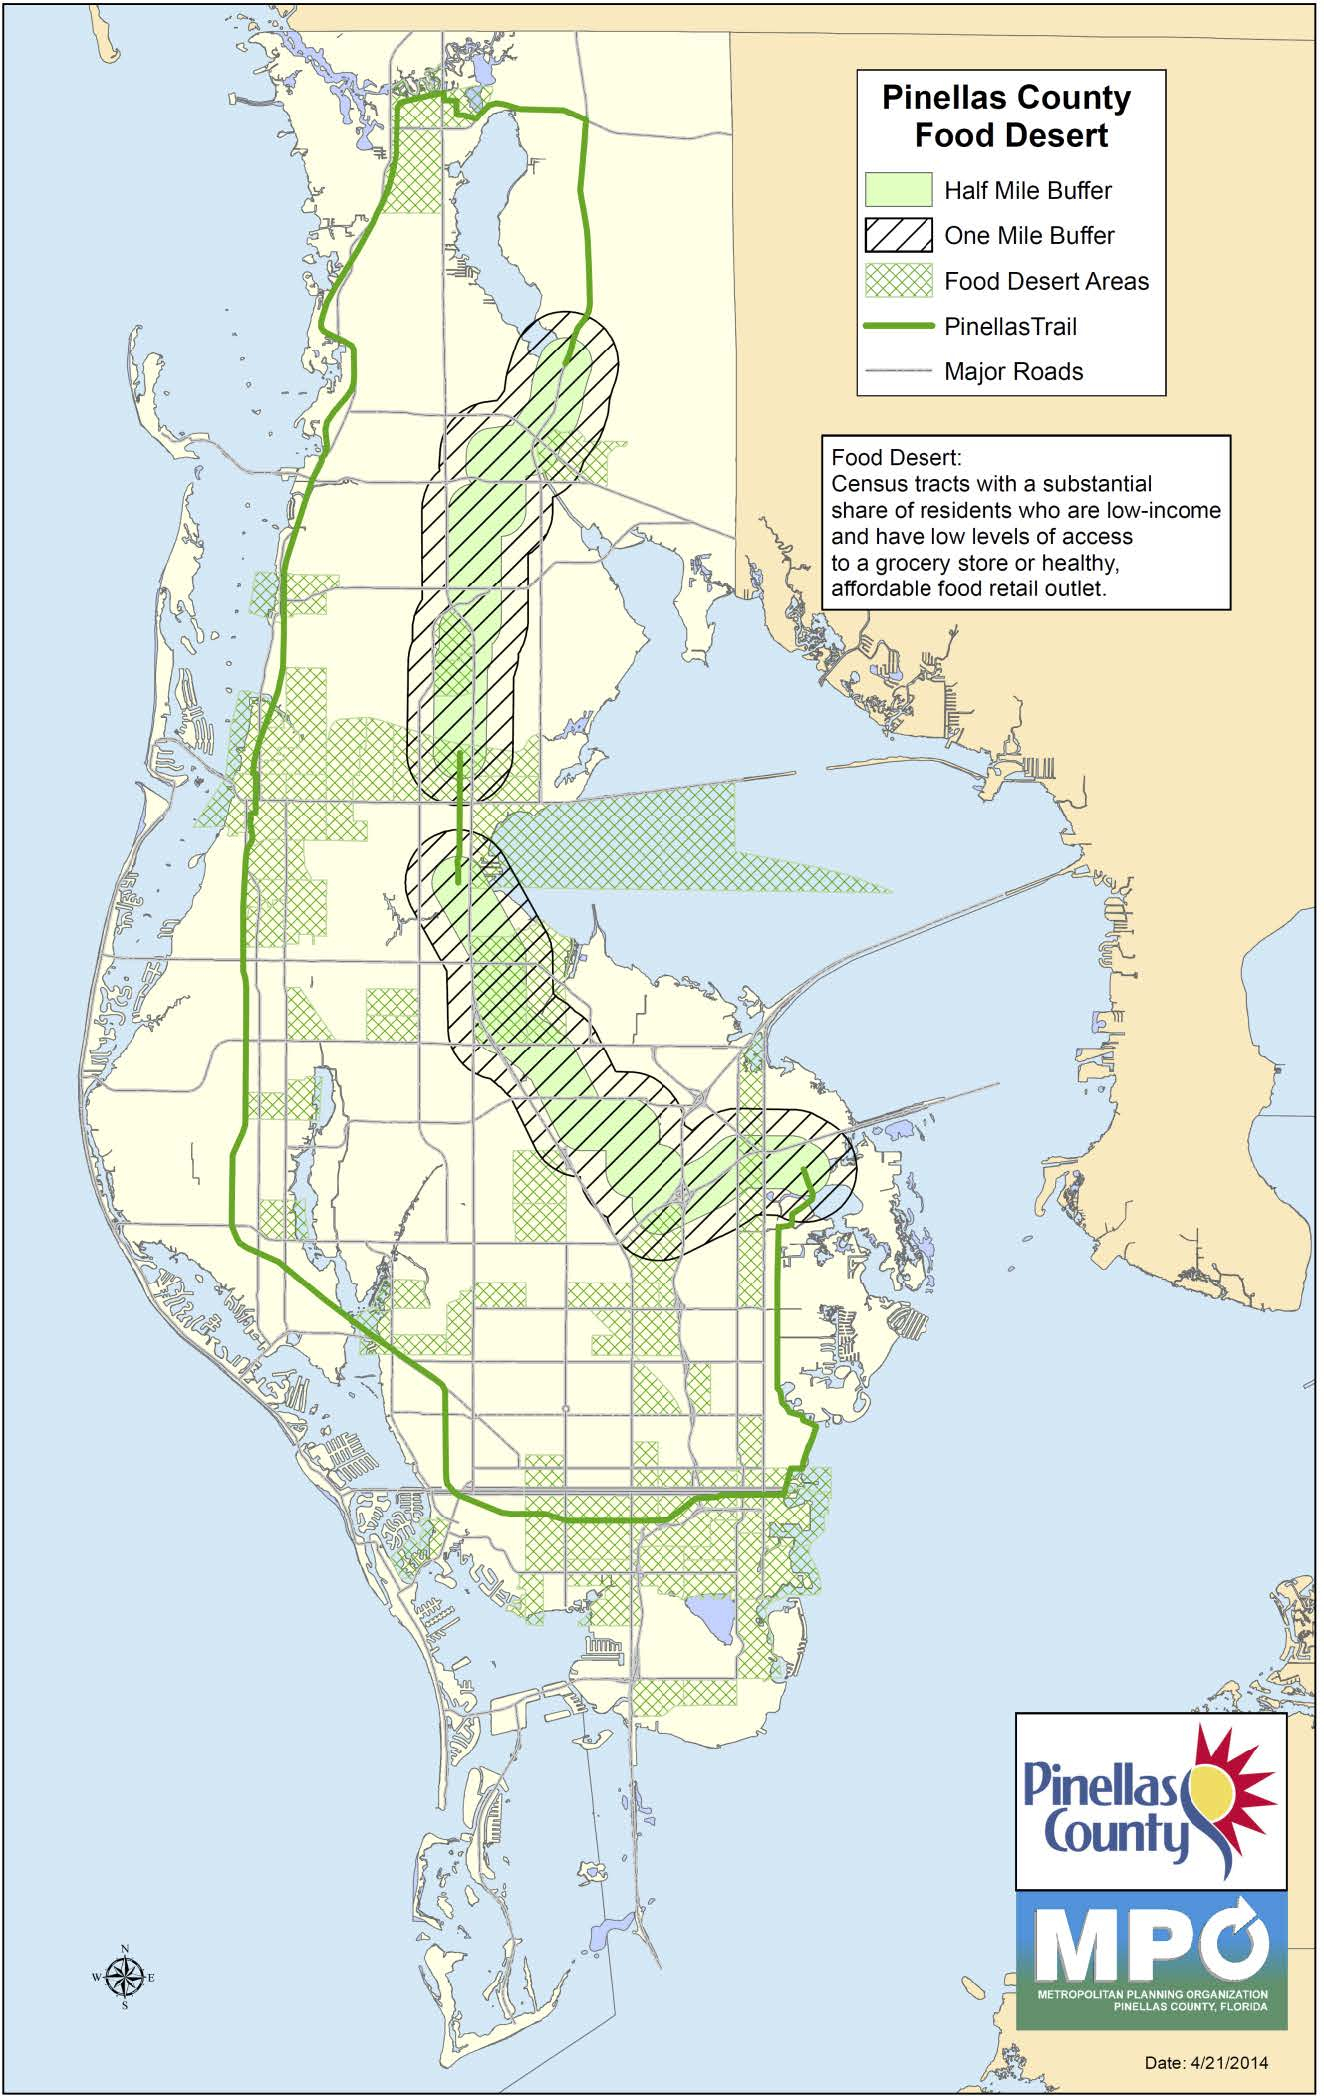 Pinellas County Trail Loop - Primary Selection Criteria - Pinellas Trail Map Florida